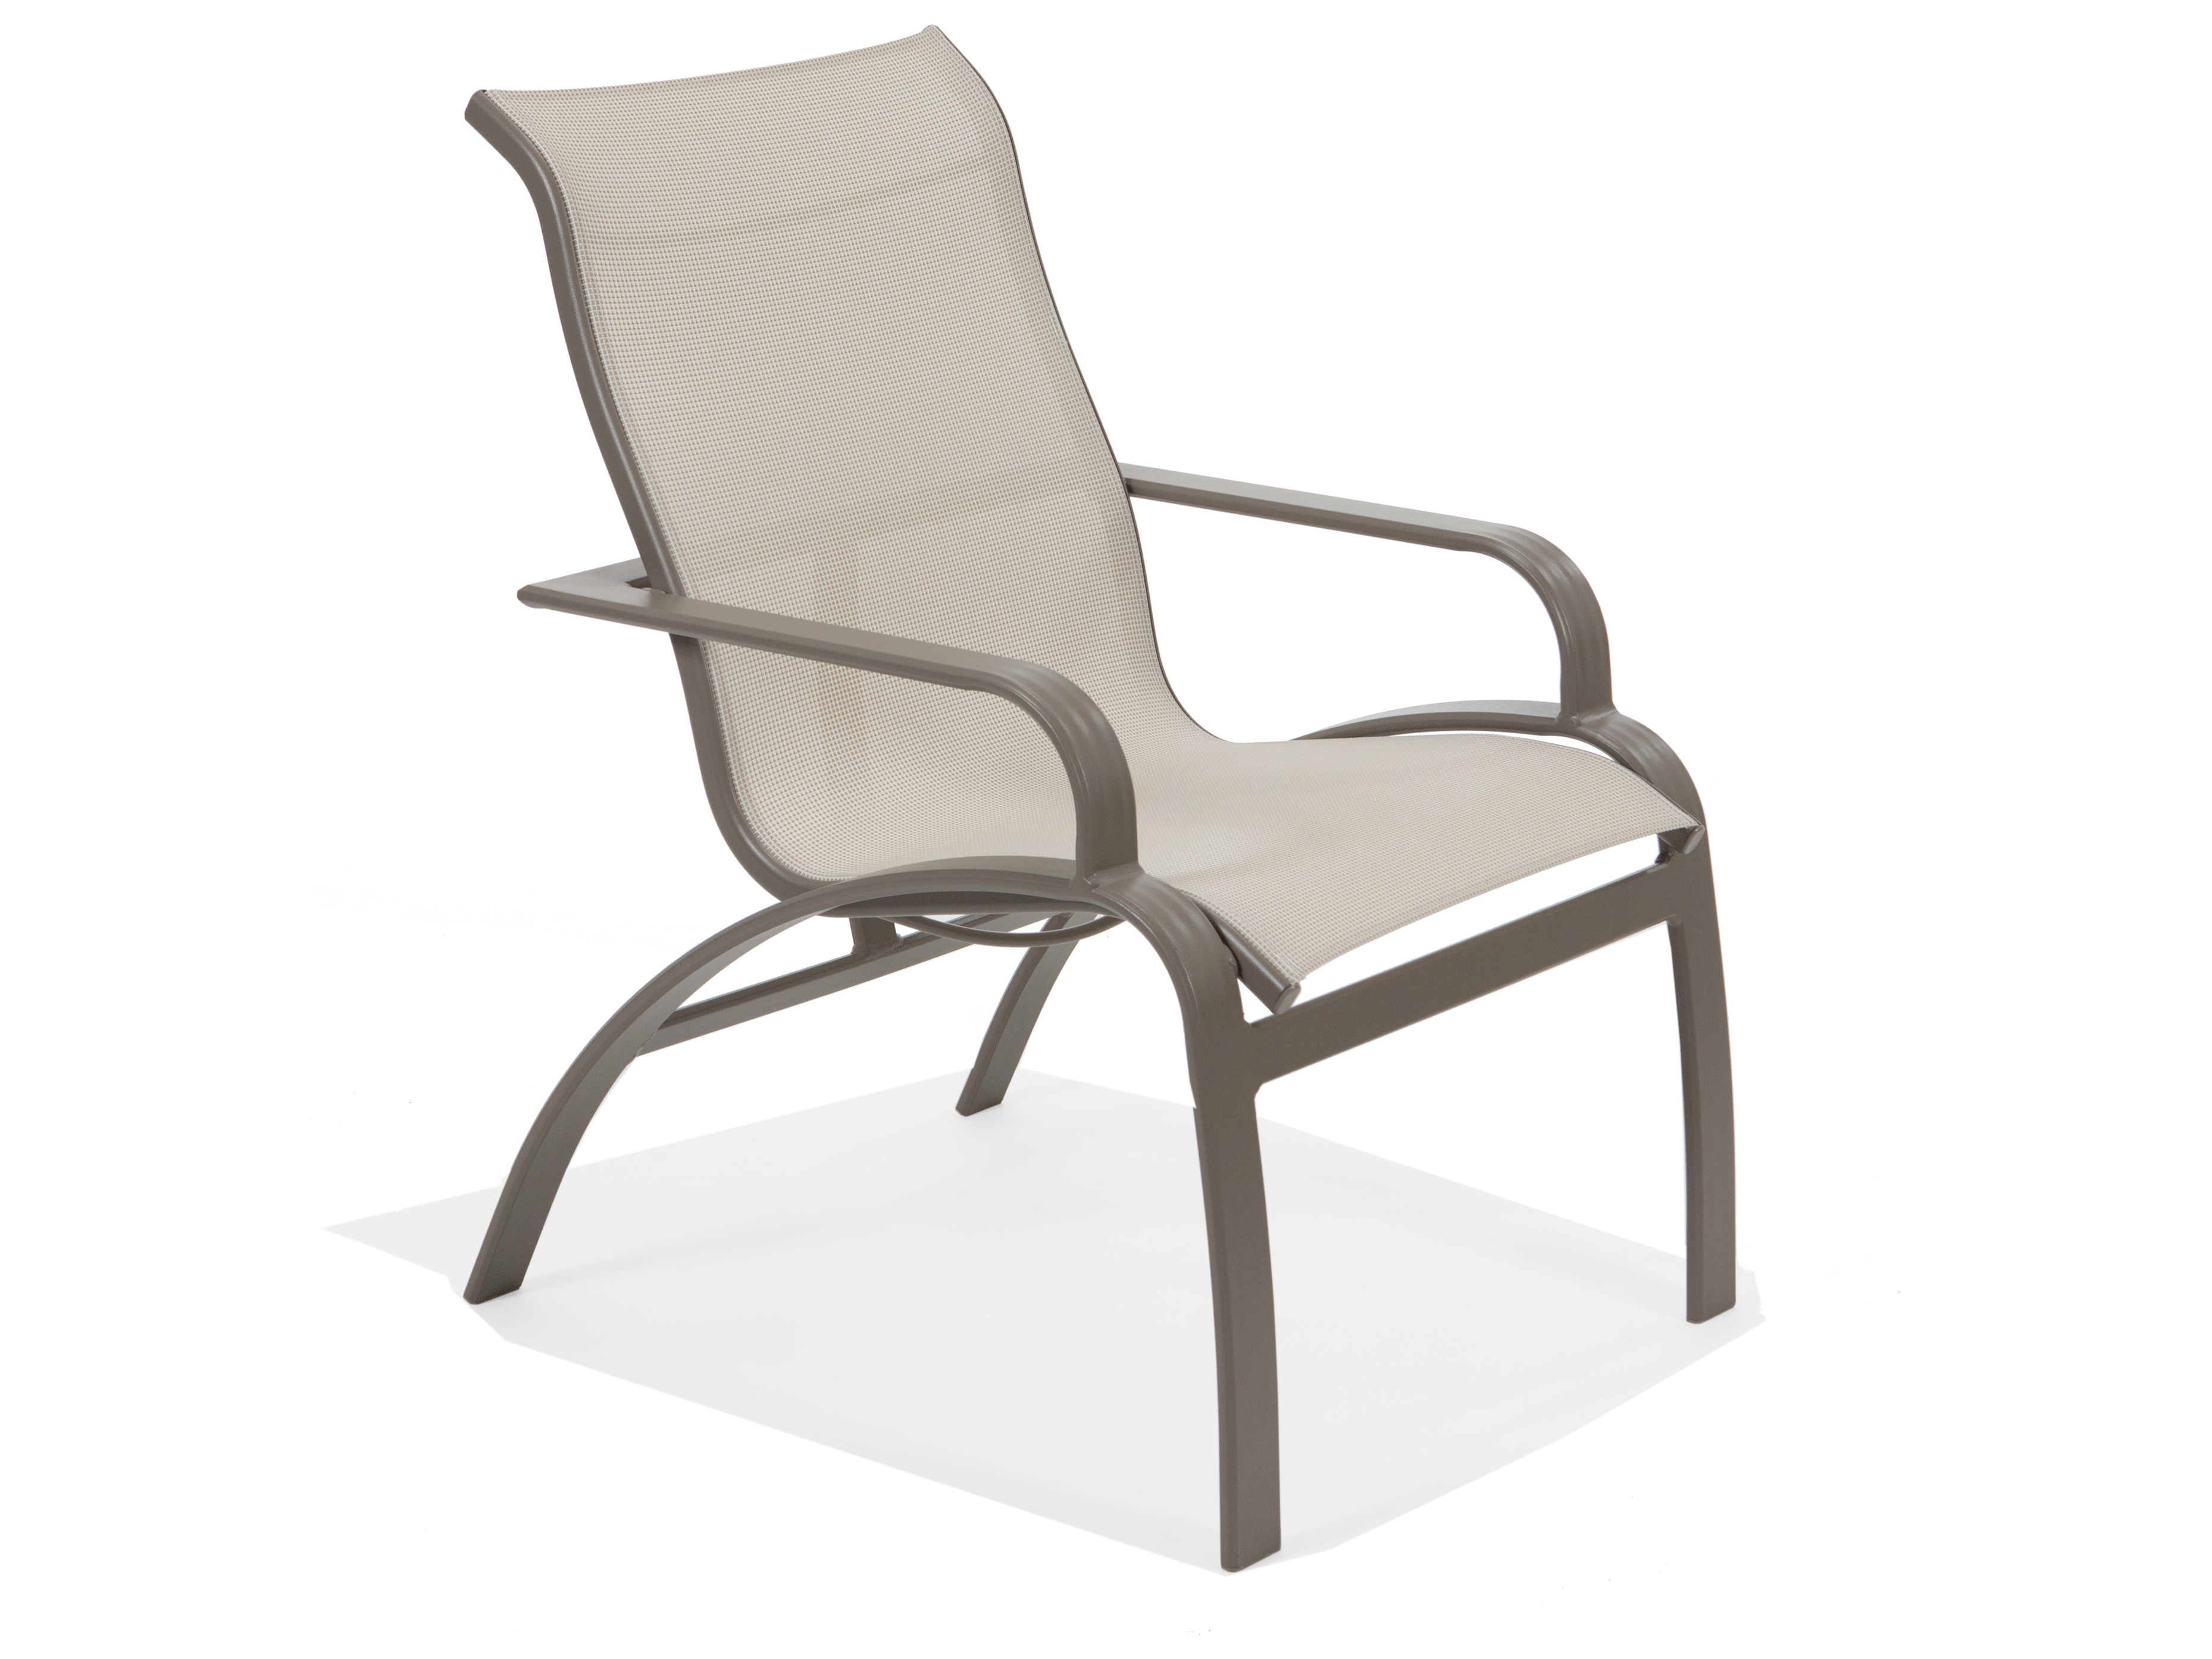 sling back patio chairs folding quad chair parts winston evolution aluminum high arm dining